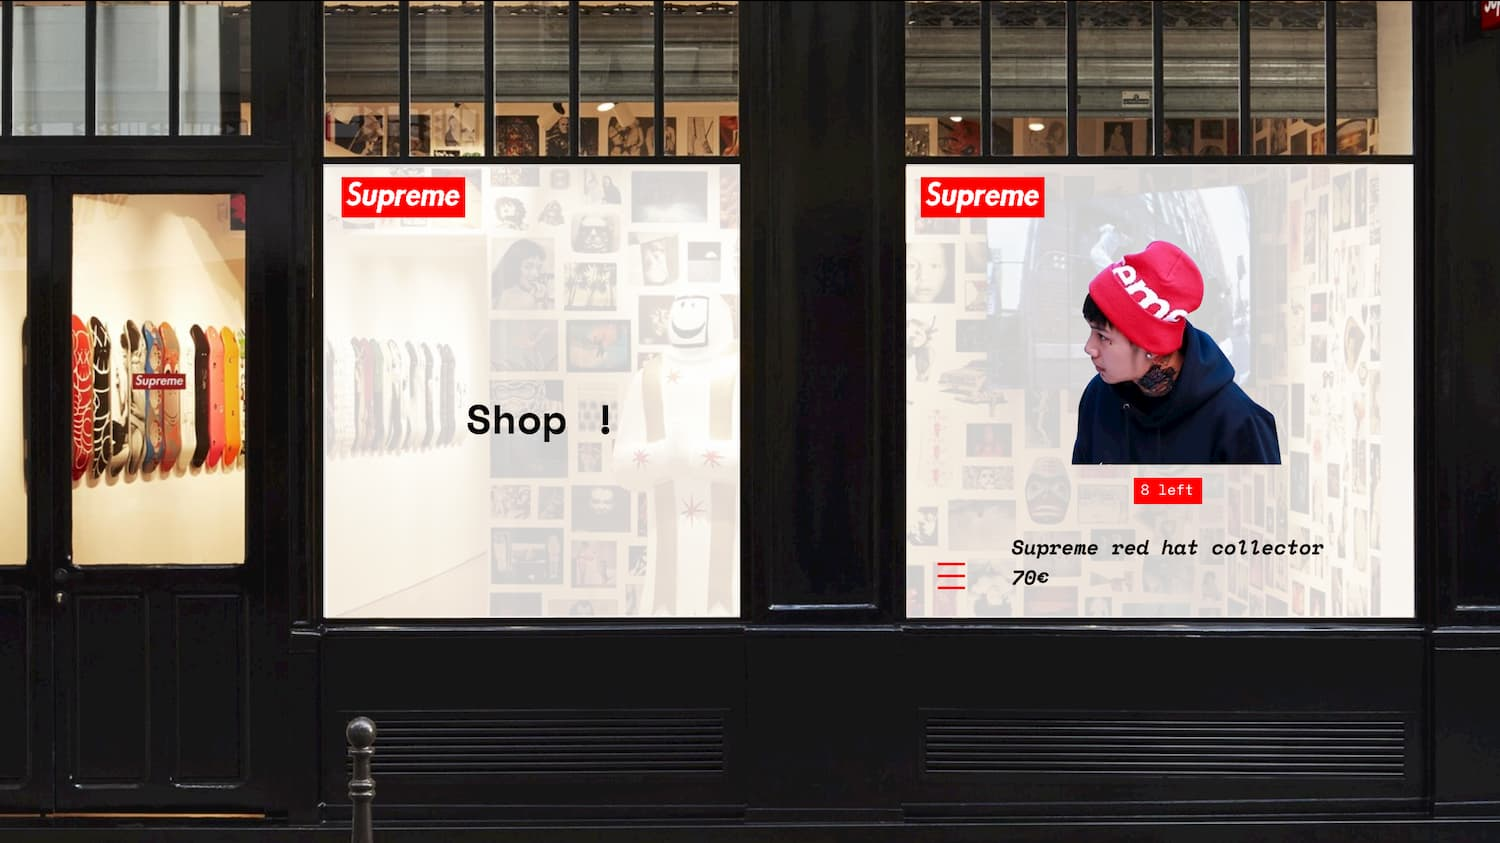 Digital and graphic design for the brand Supreme